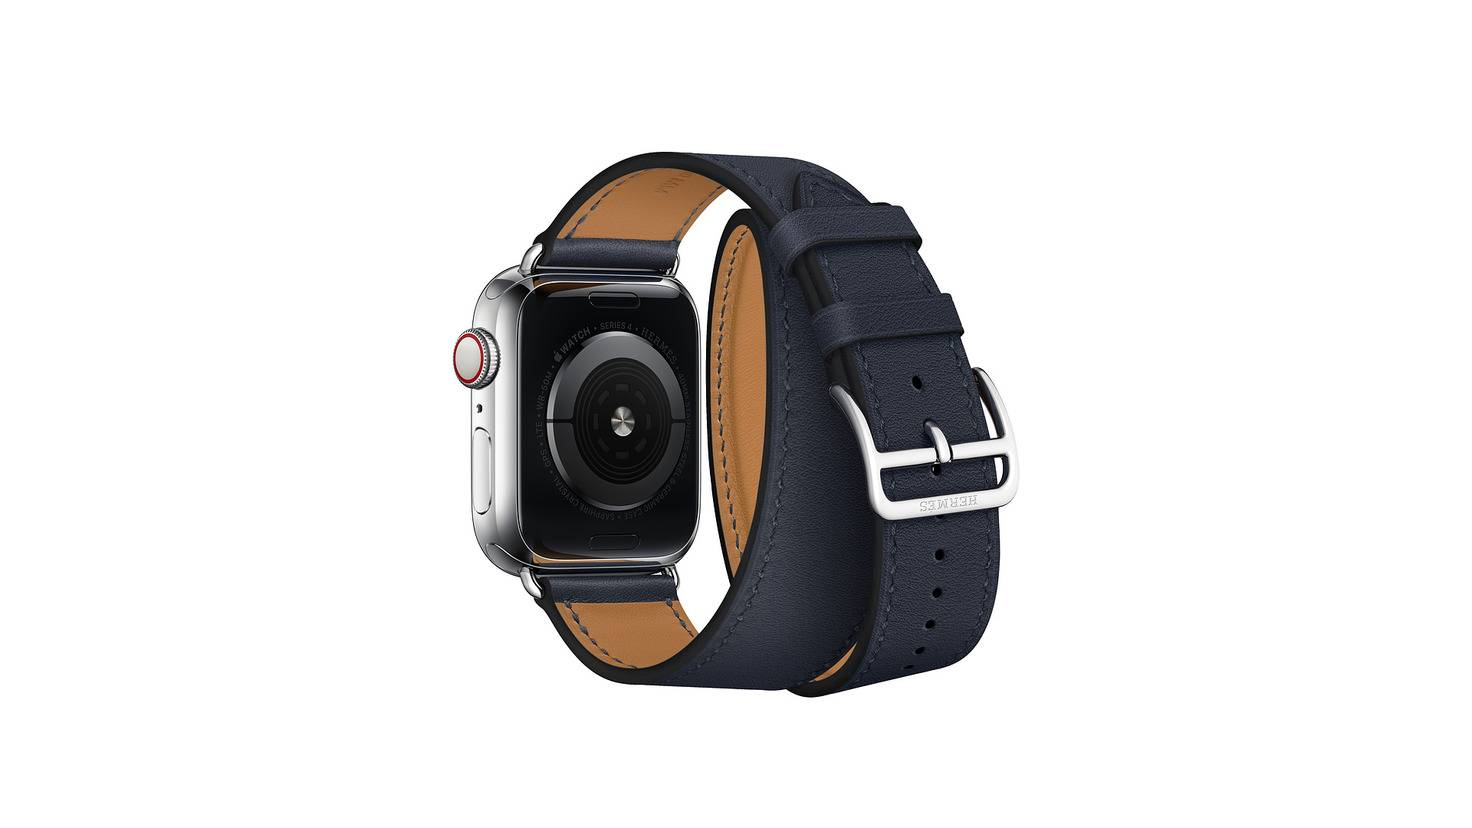 Apple-Watch-Hermes-Lederarmband-Double